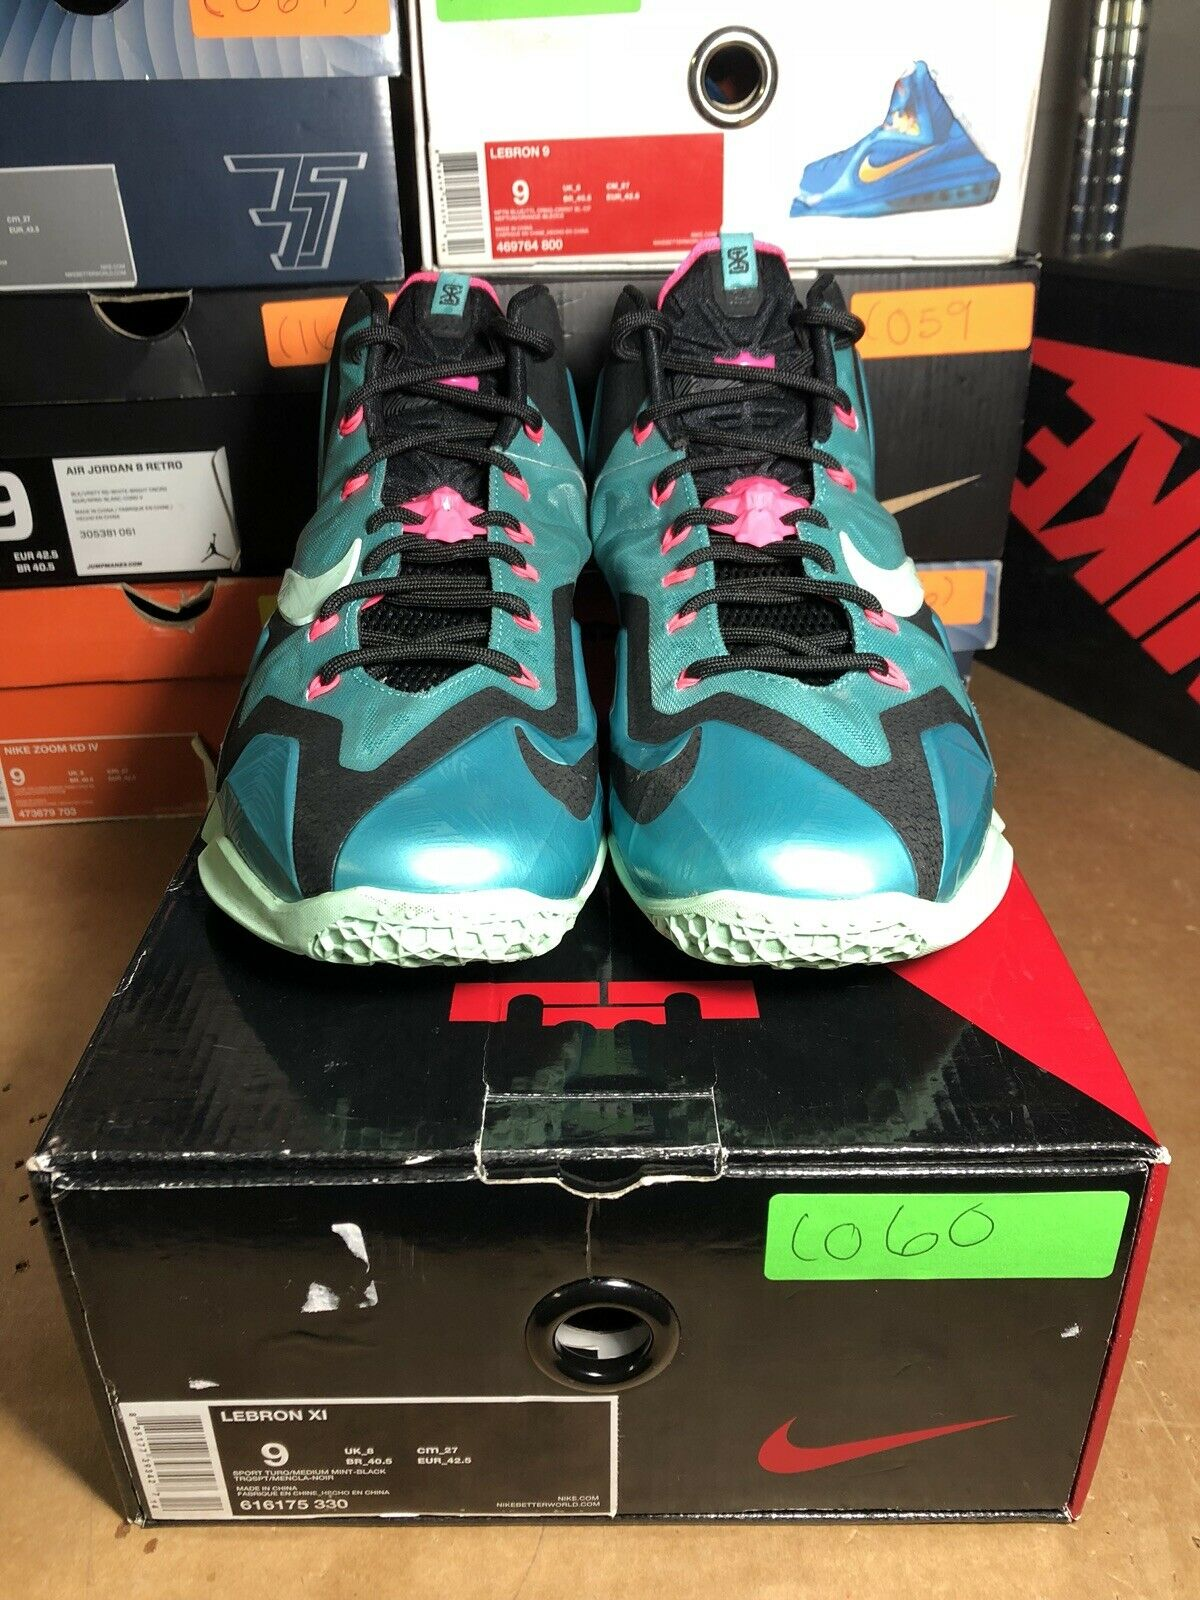 100% Authentic Nike Lebron  11 South Beach Size 9 Worn 616175 330